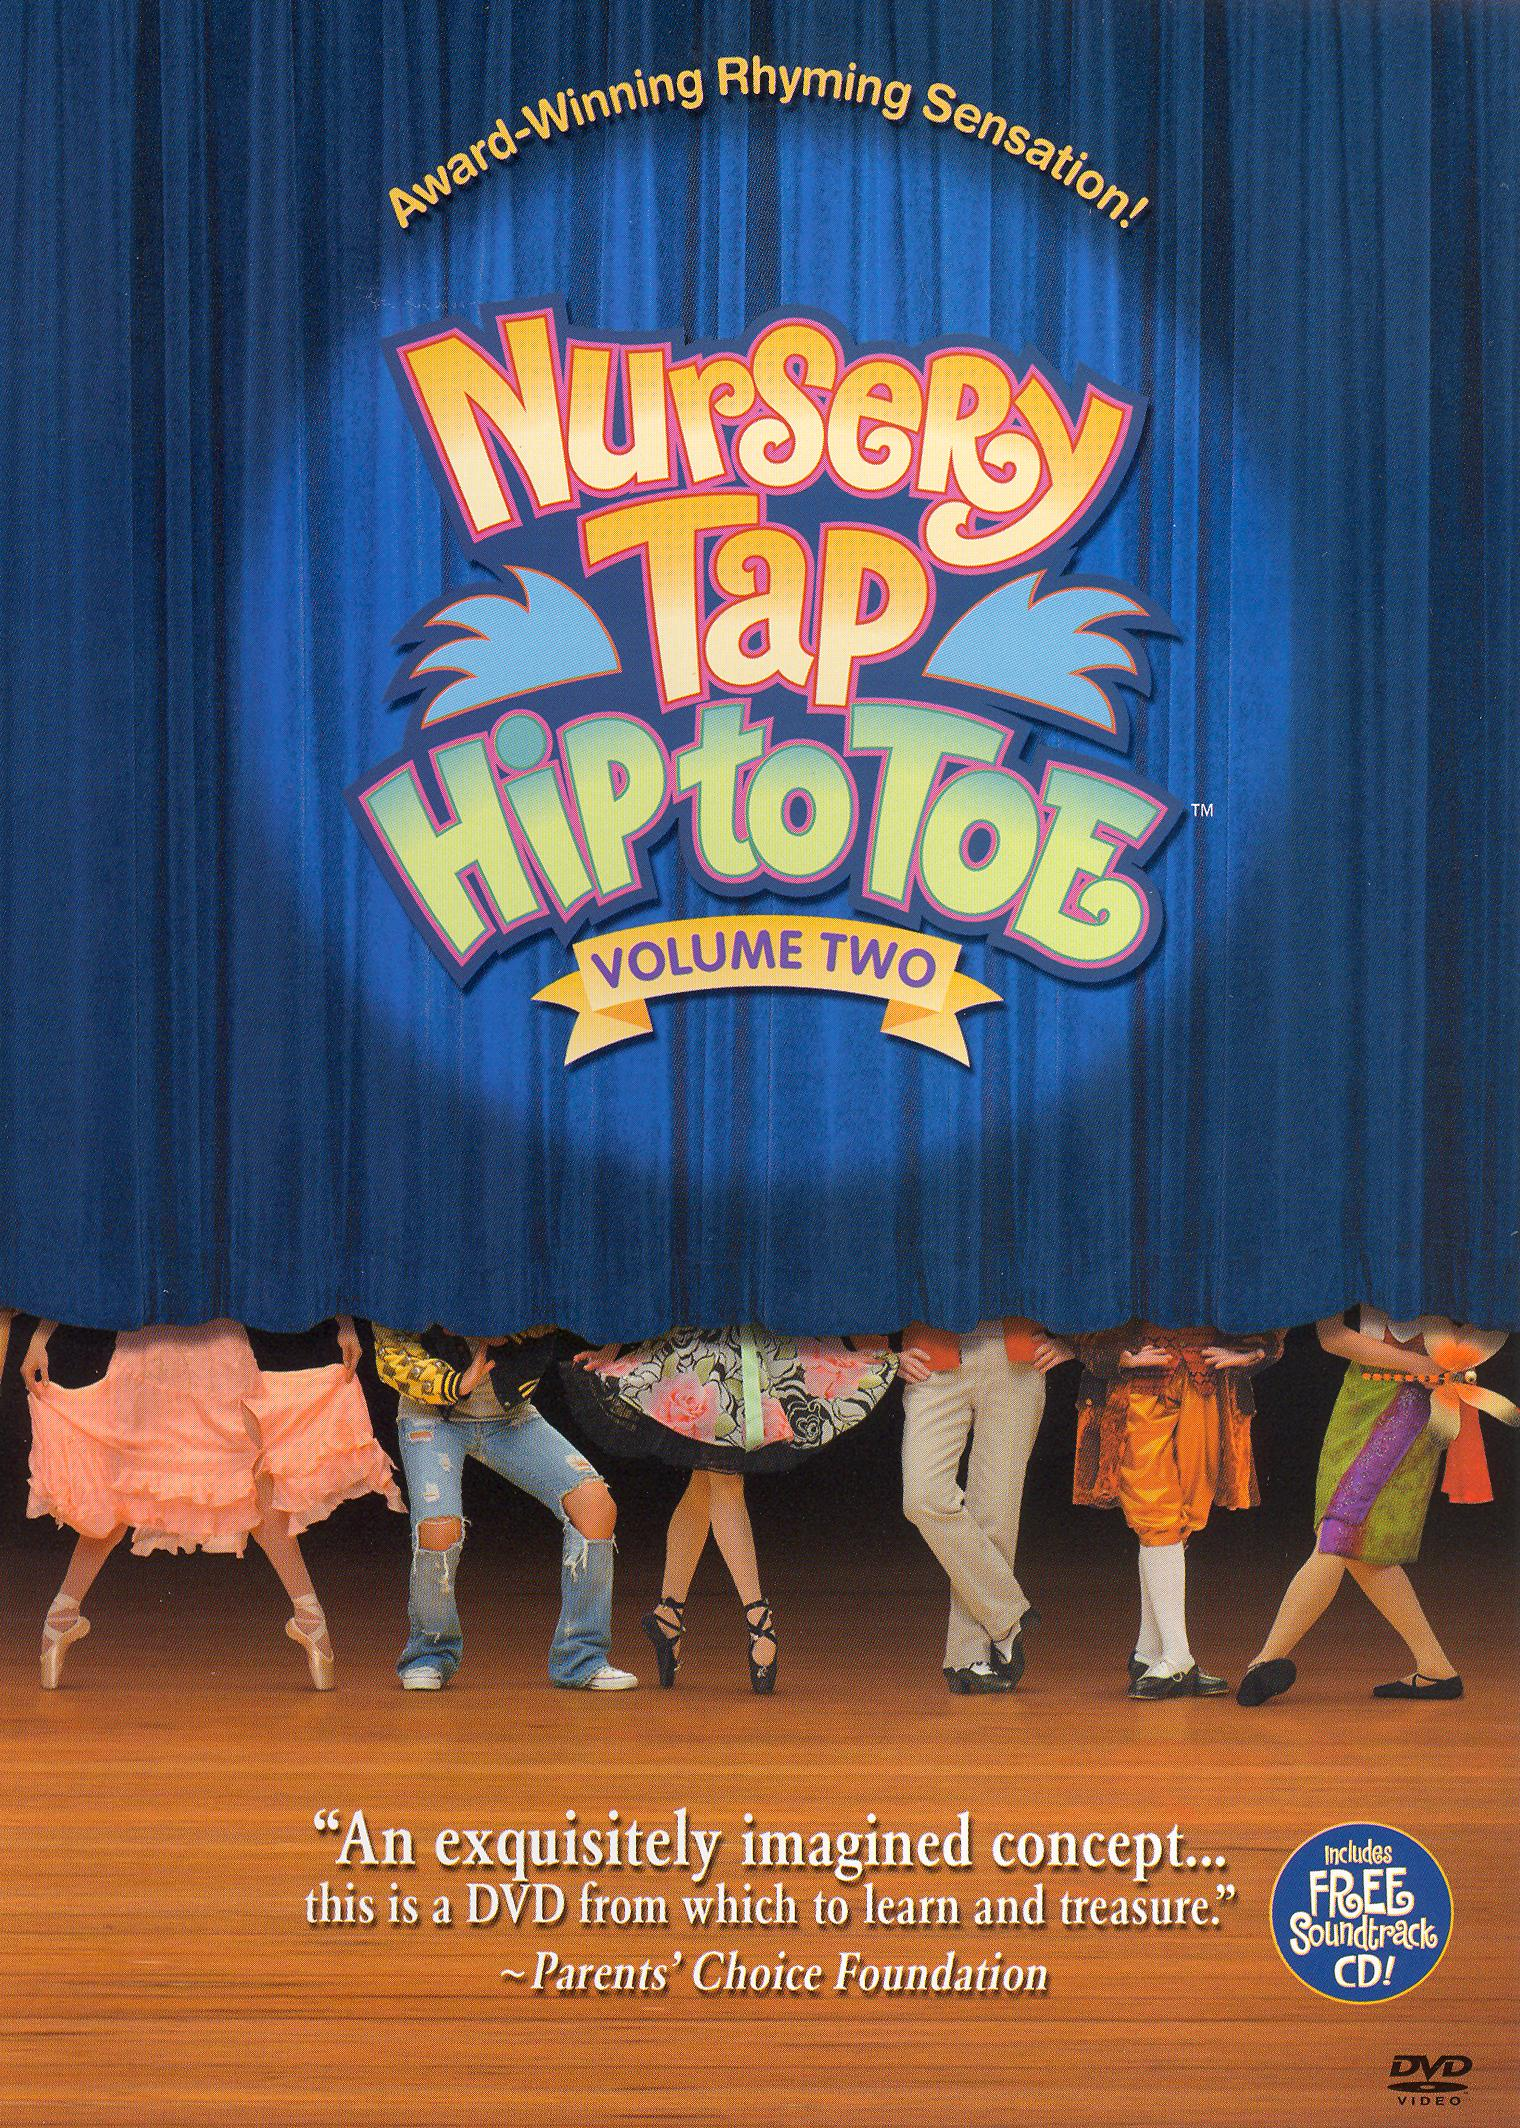 Nursery Tap: Hip to Toe, Vol. 2